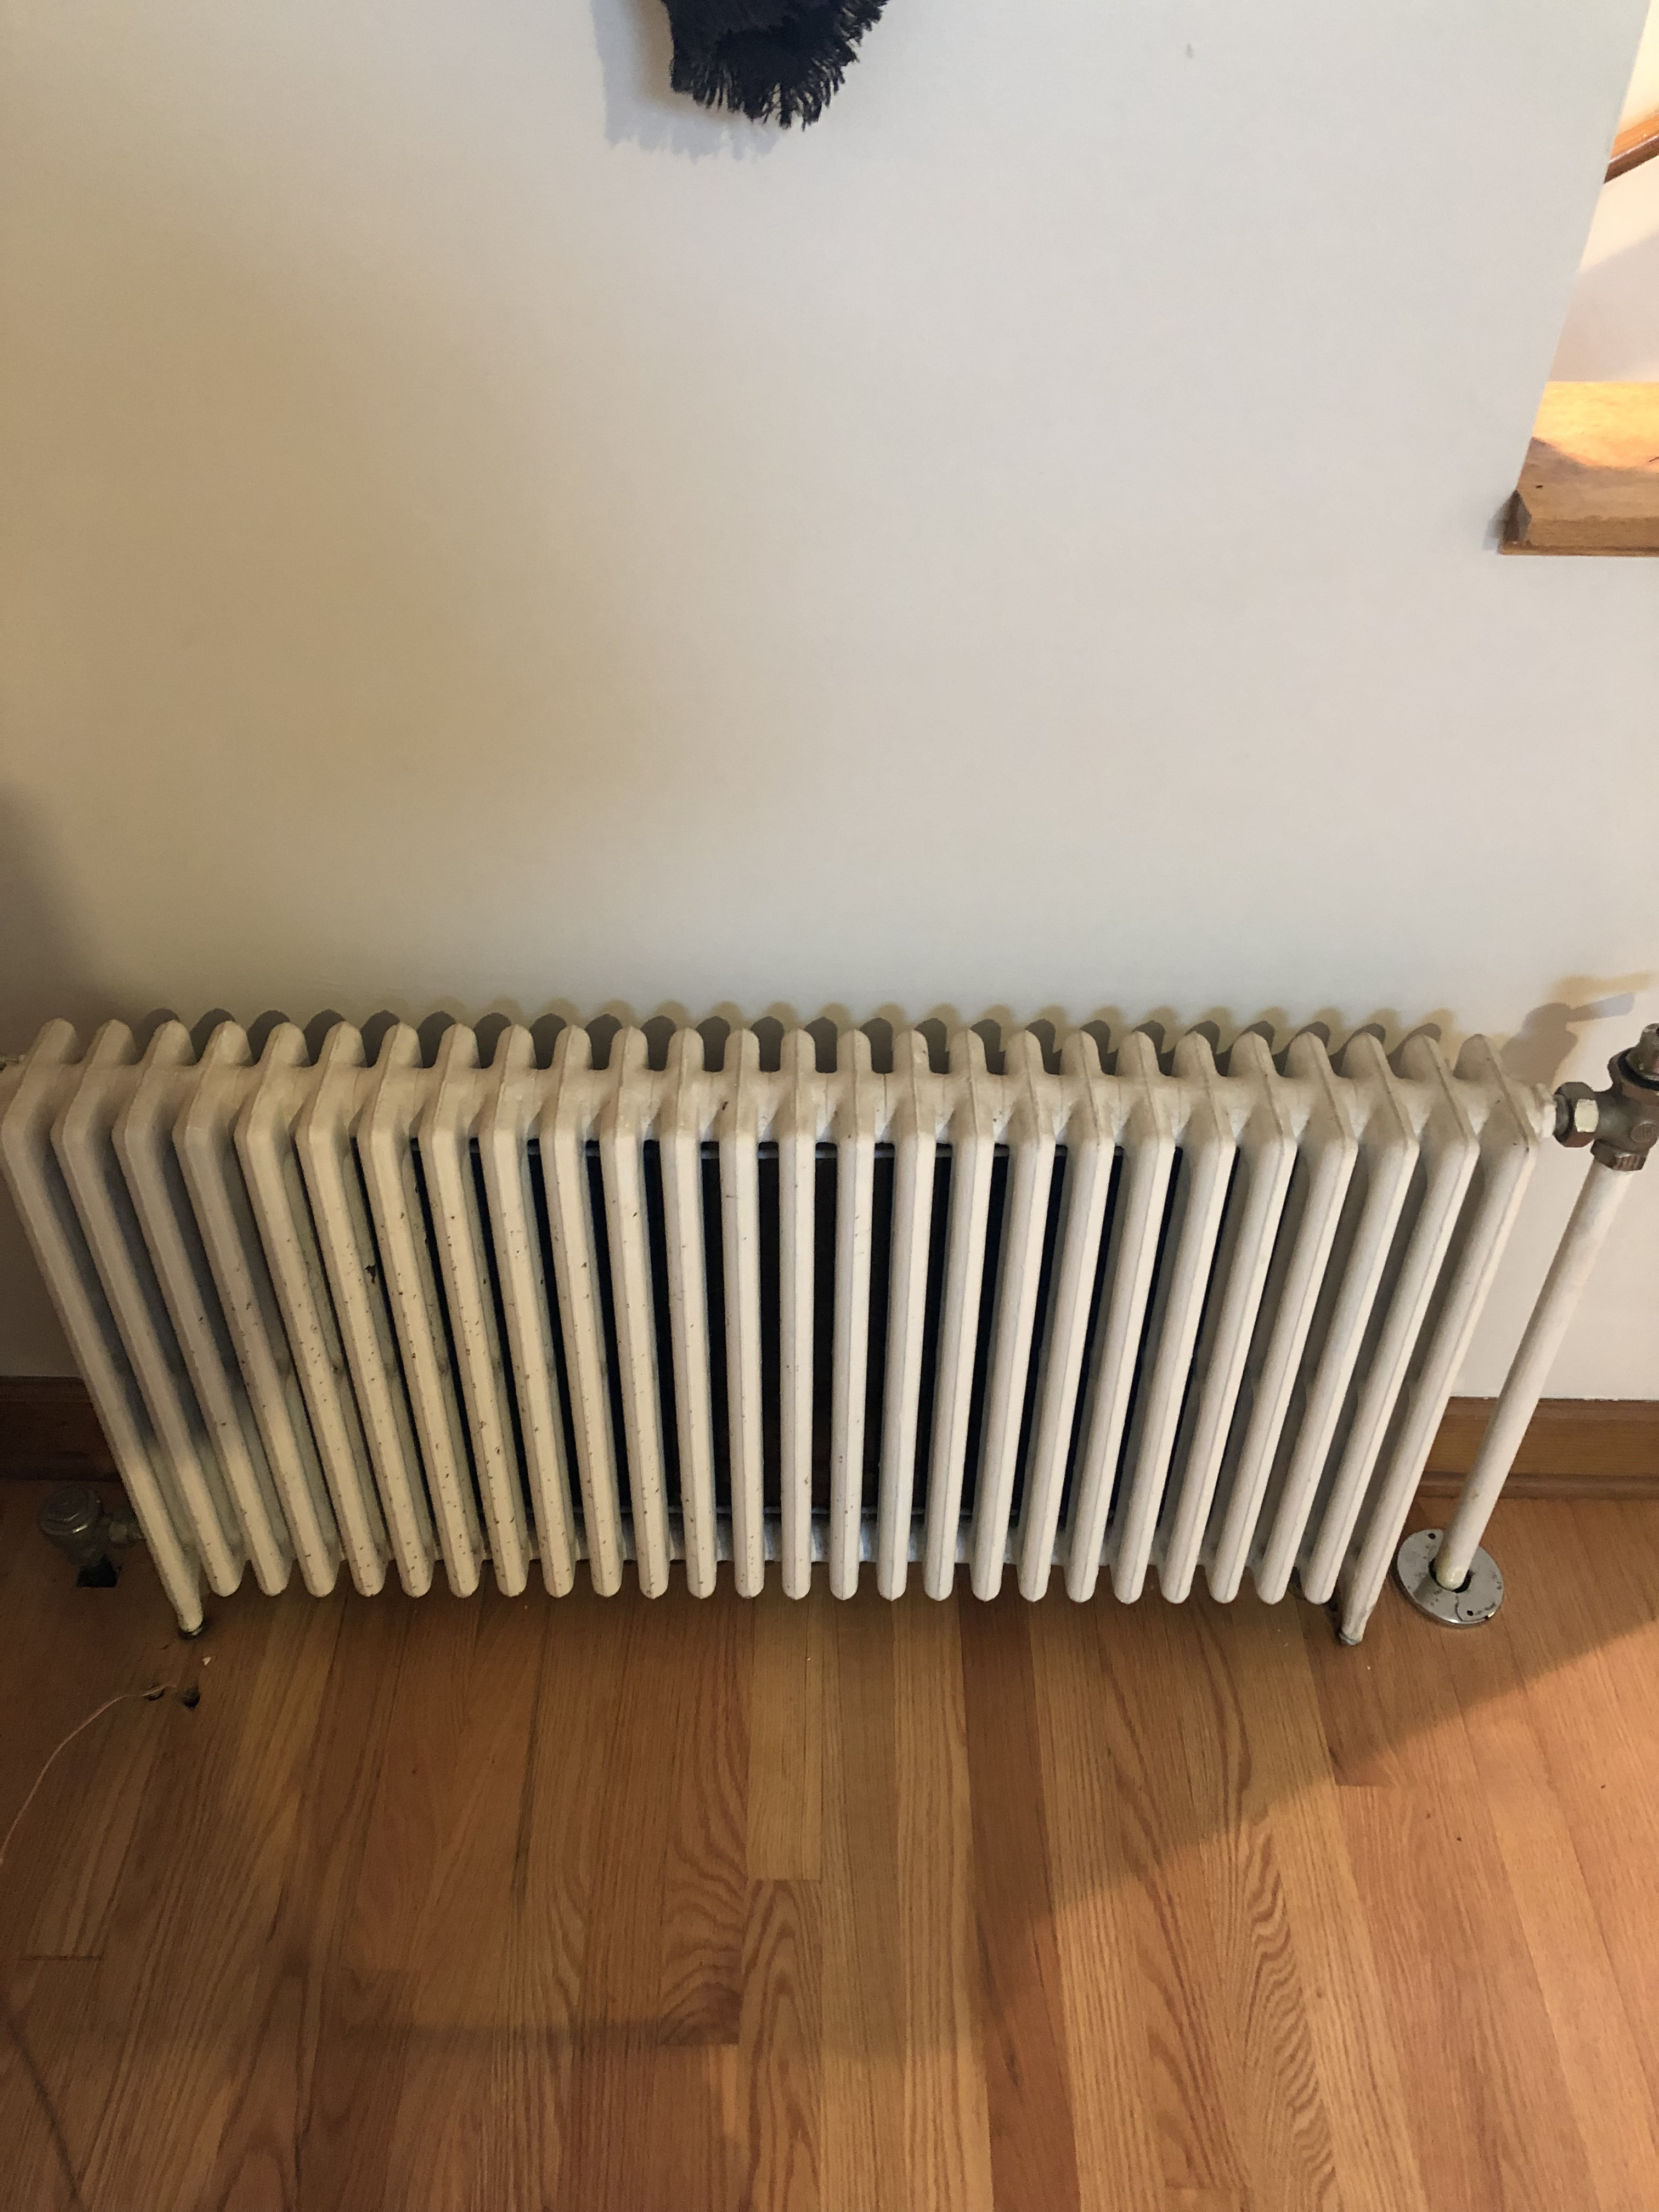 Radiator Not Getting Hot >> Steam Radiator Not Getting Hot Heating Help The Wall